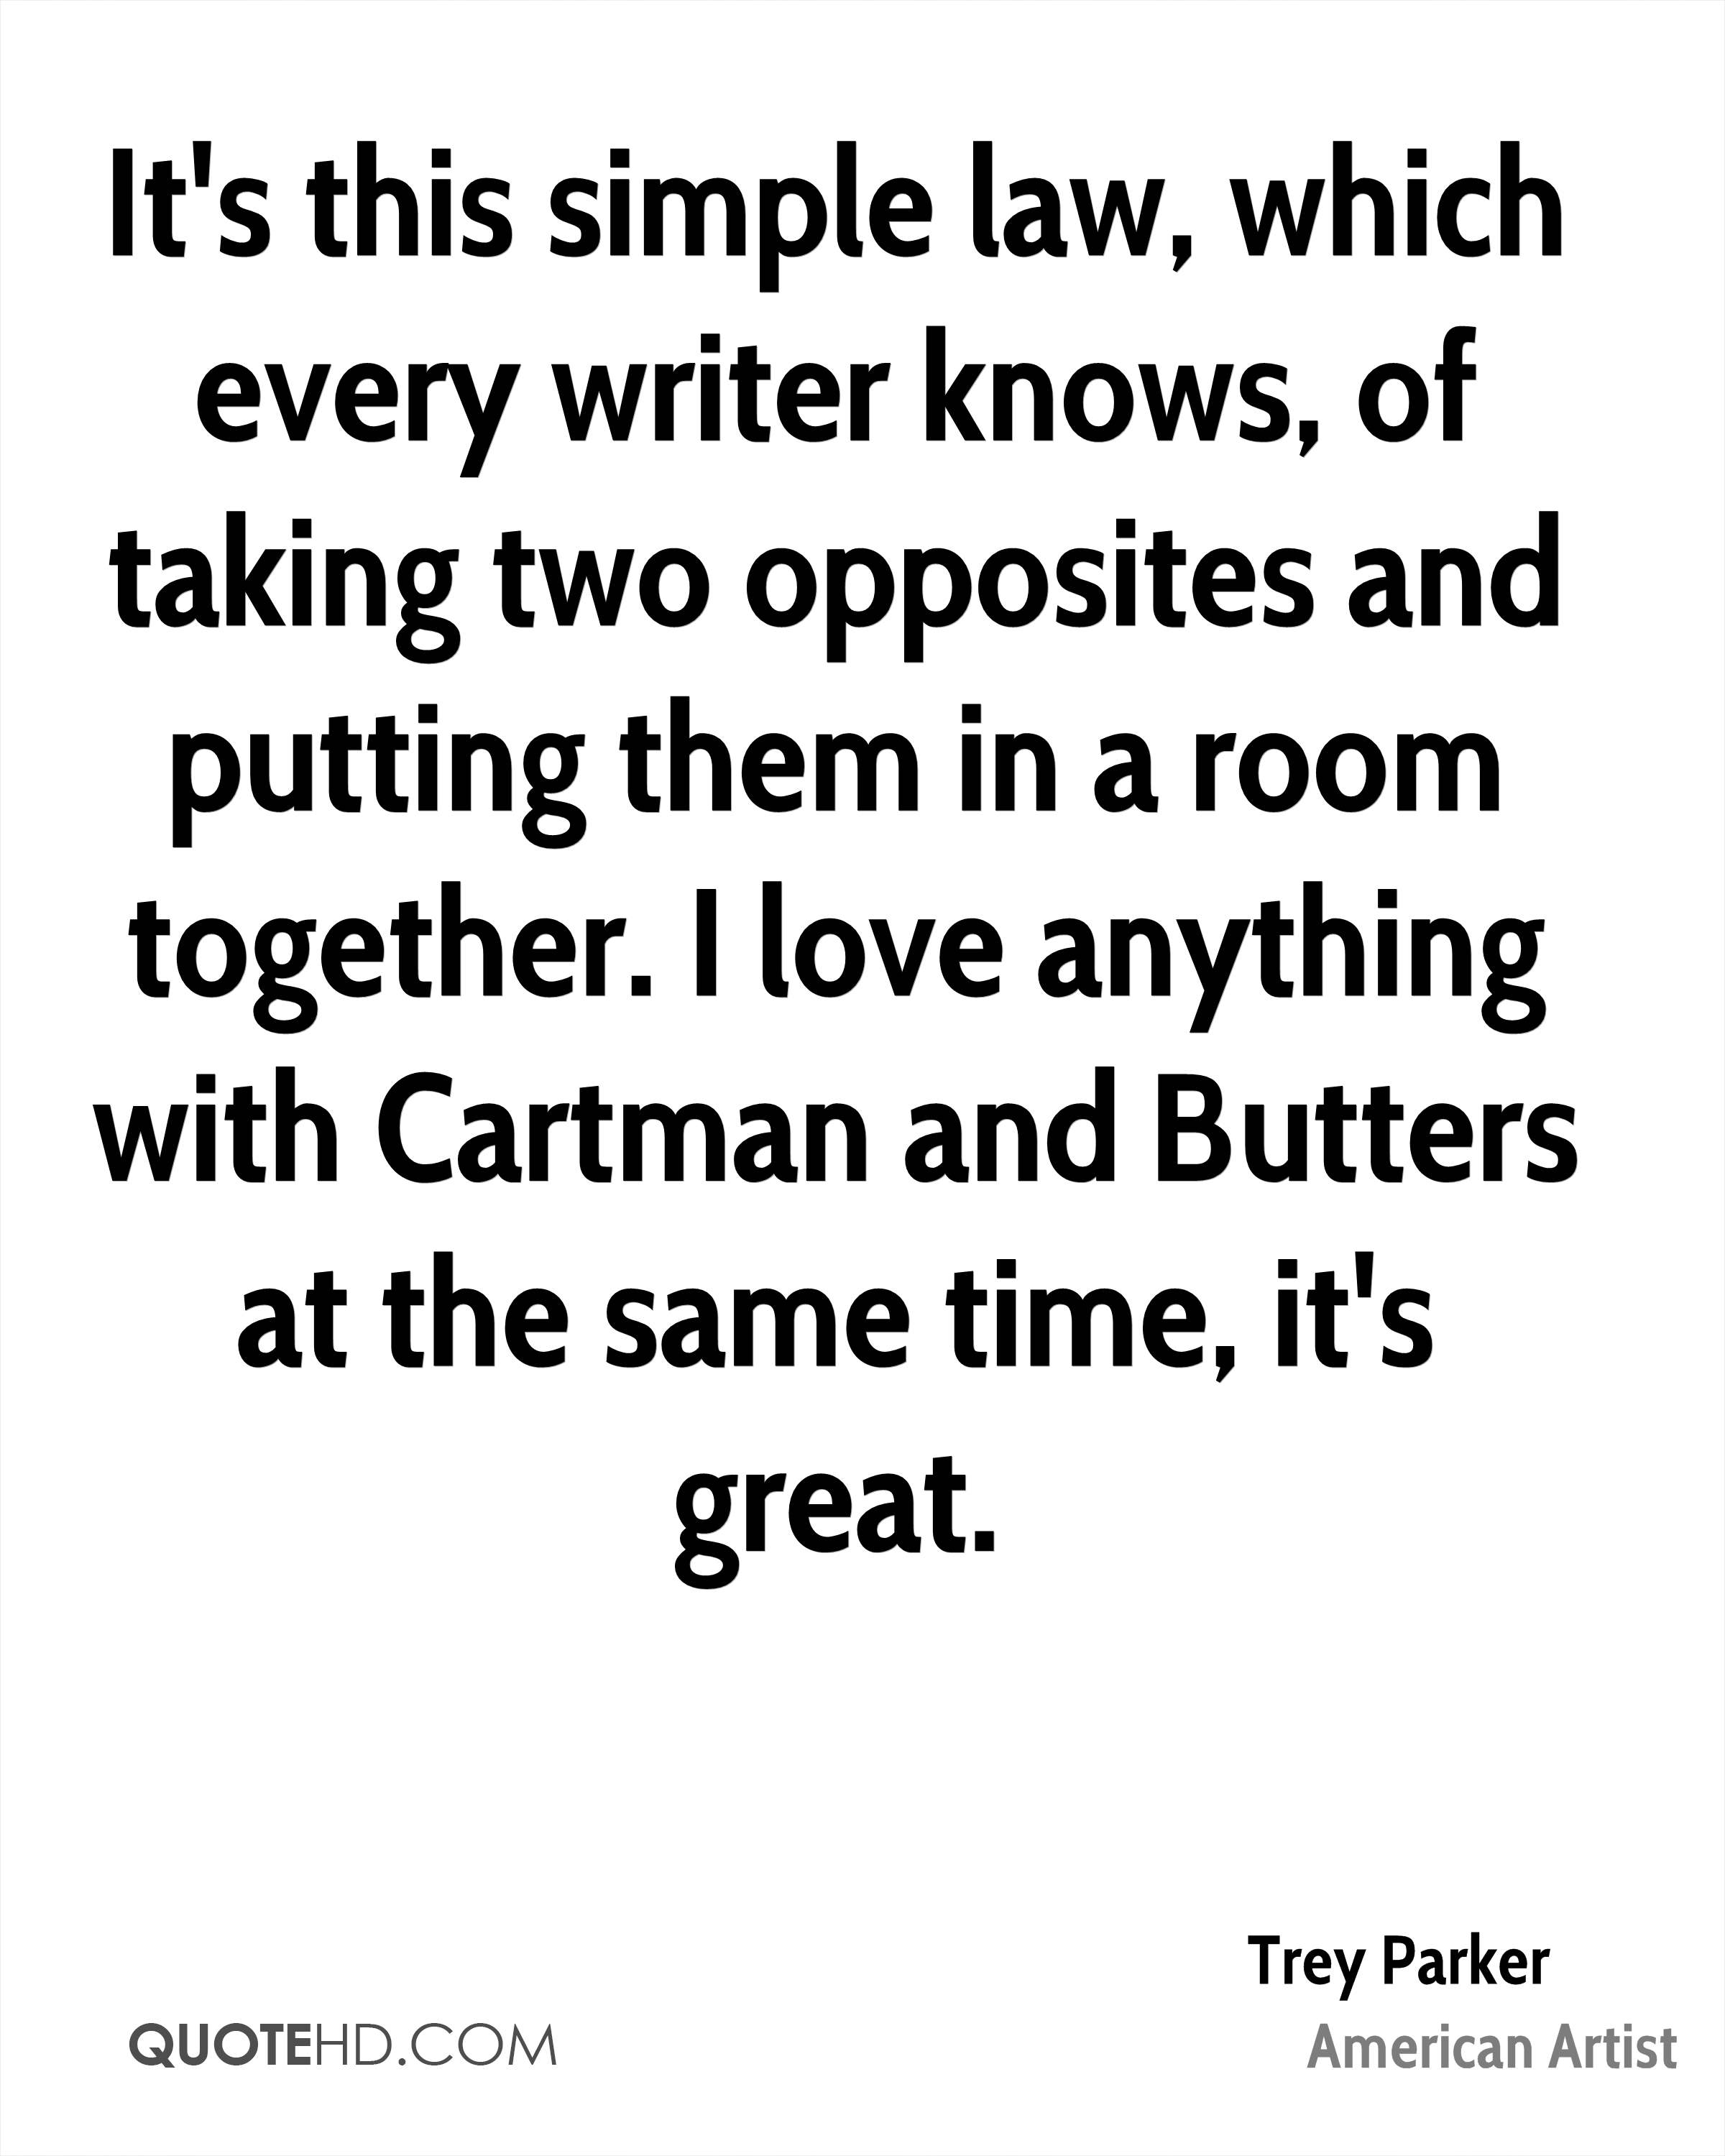 It's this simple law, which every writer knows, of taking two opposites and putting them in a room together. I love anything with Cartman and Butters at the same time, it's great.